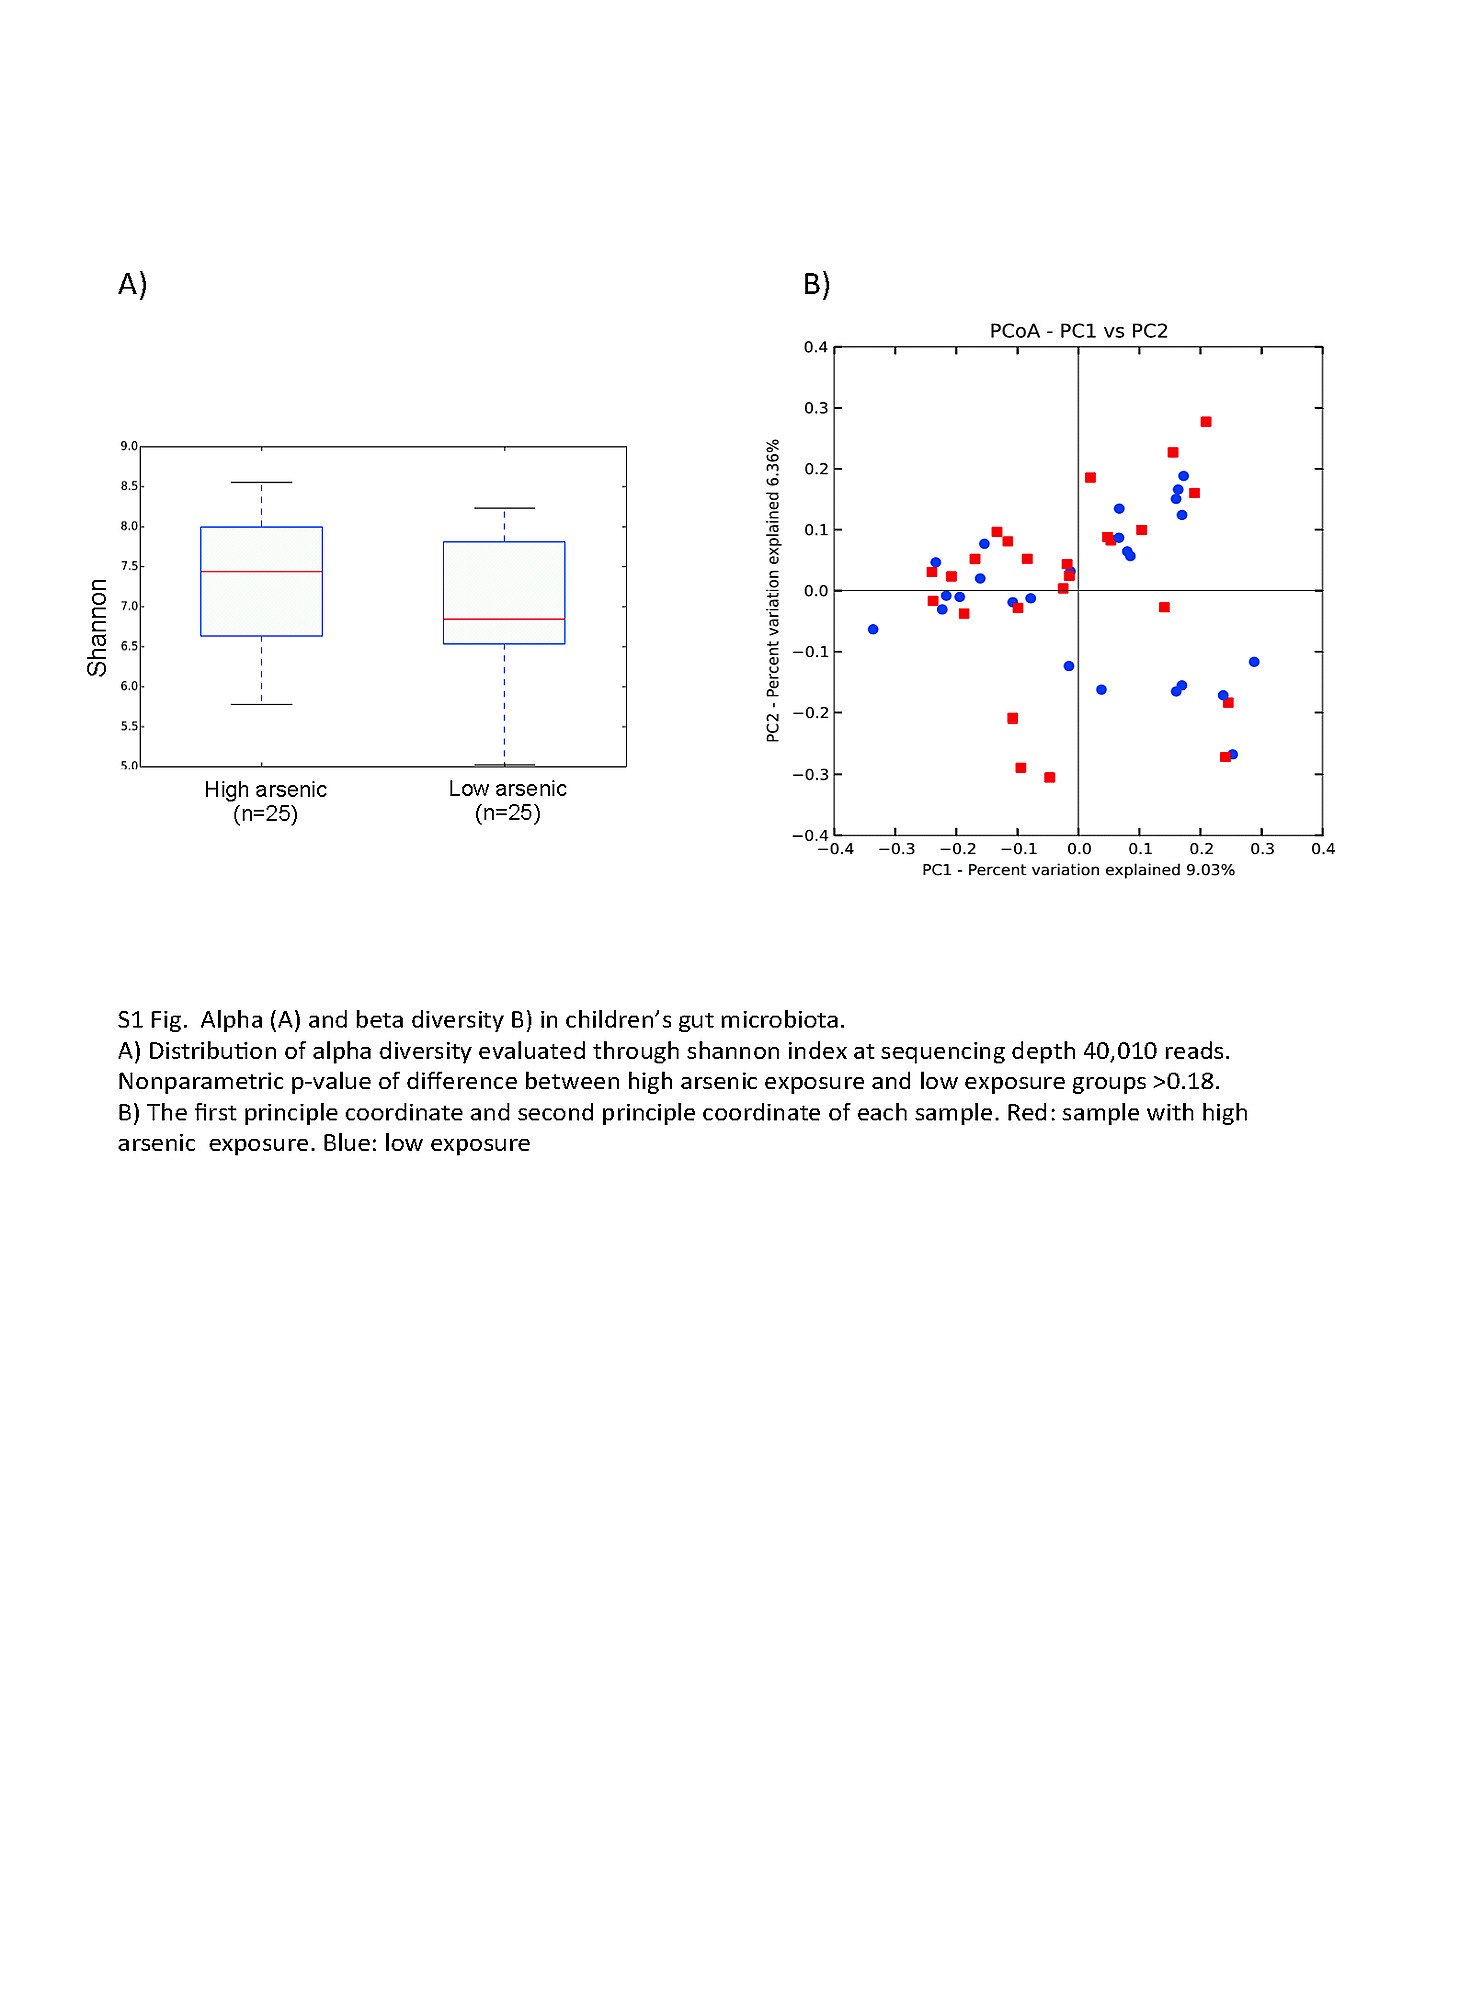 Arsenic Exposure And Intestinal Microbiota In Children From 208 Single Phase Wiring Diagram Hp S Fixture S1 Fig Analysis Of Alpha Beta Diversity